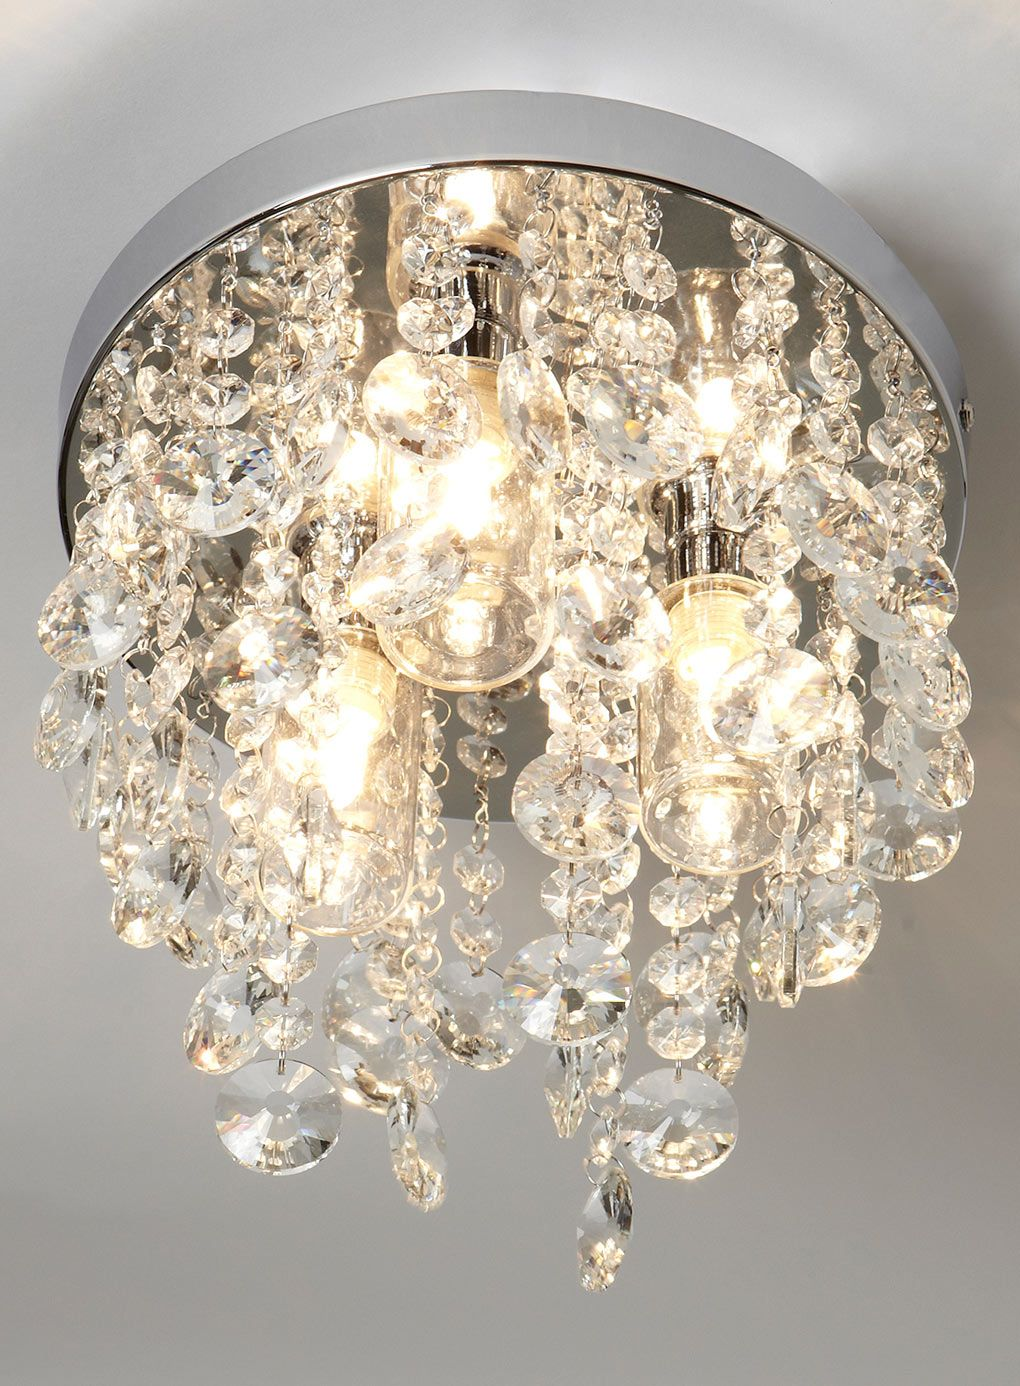 Bathroom Chandeliers Bhs bedroom - chrome cygnus 3 light ceiling fitting - bhs - £60 out of